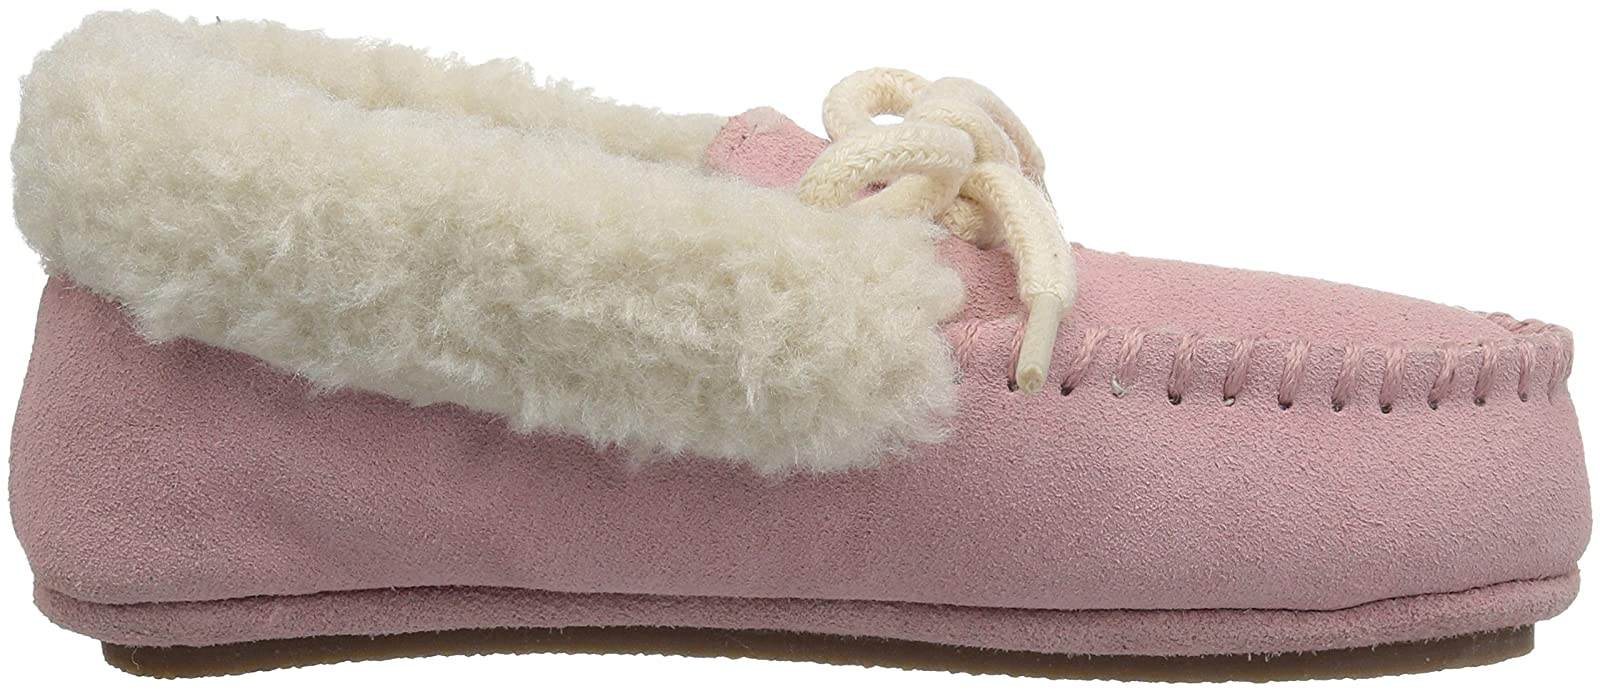 Polo Ralph Lauren Kids Girls' Allister Slipper RF100516T - 7